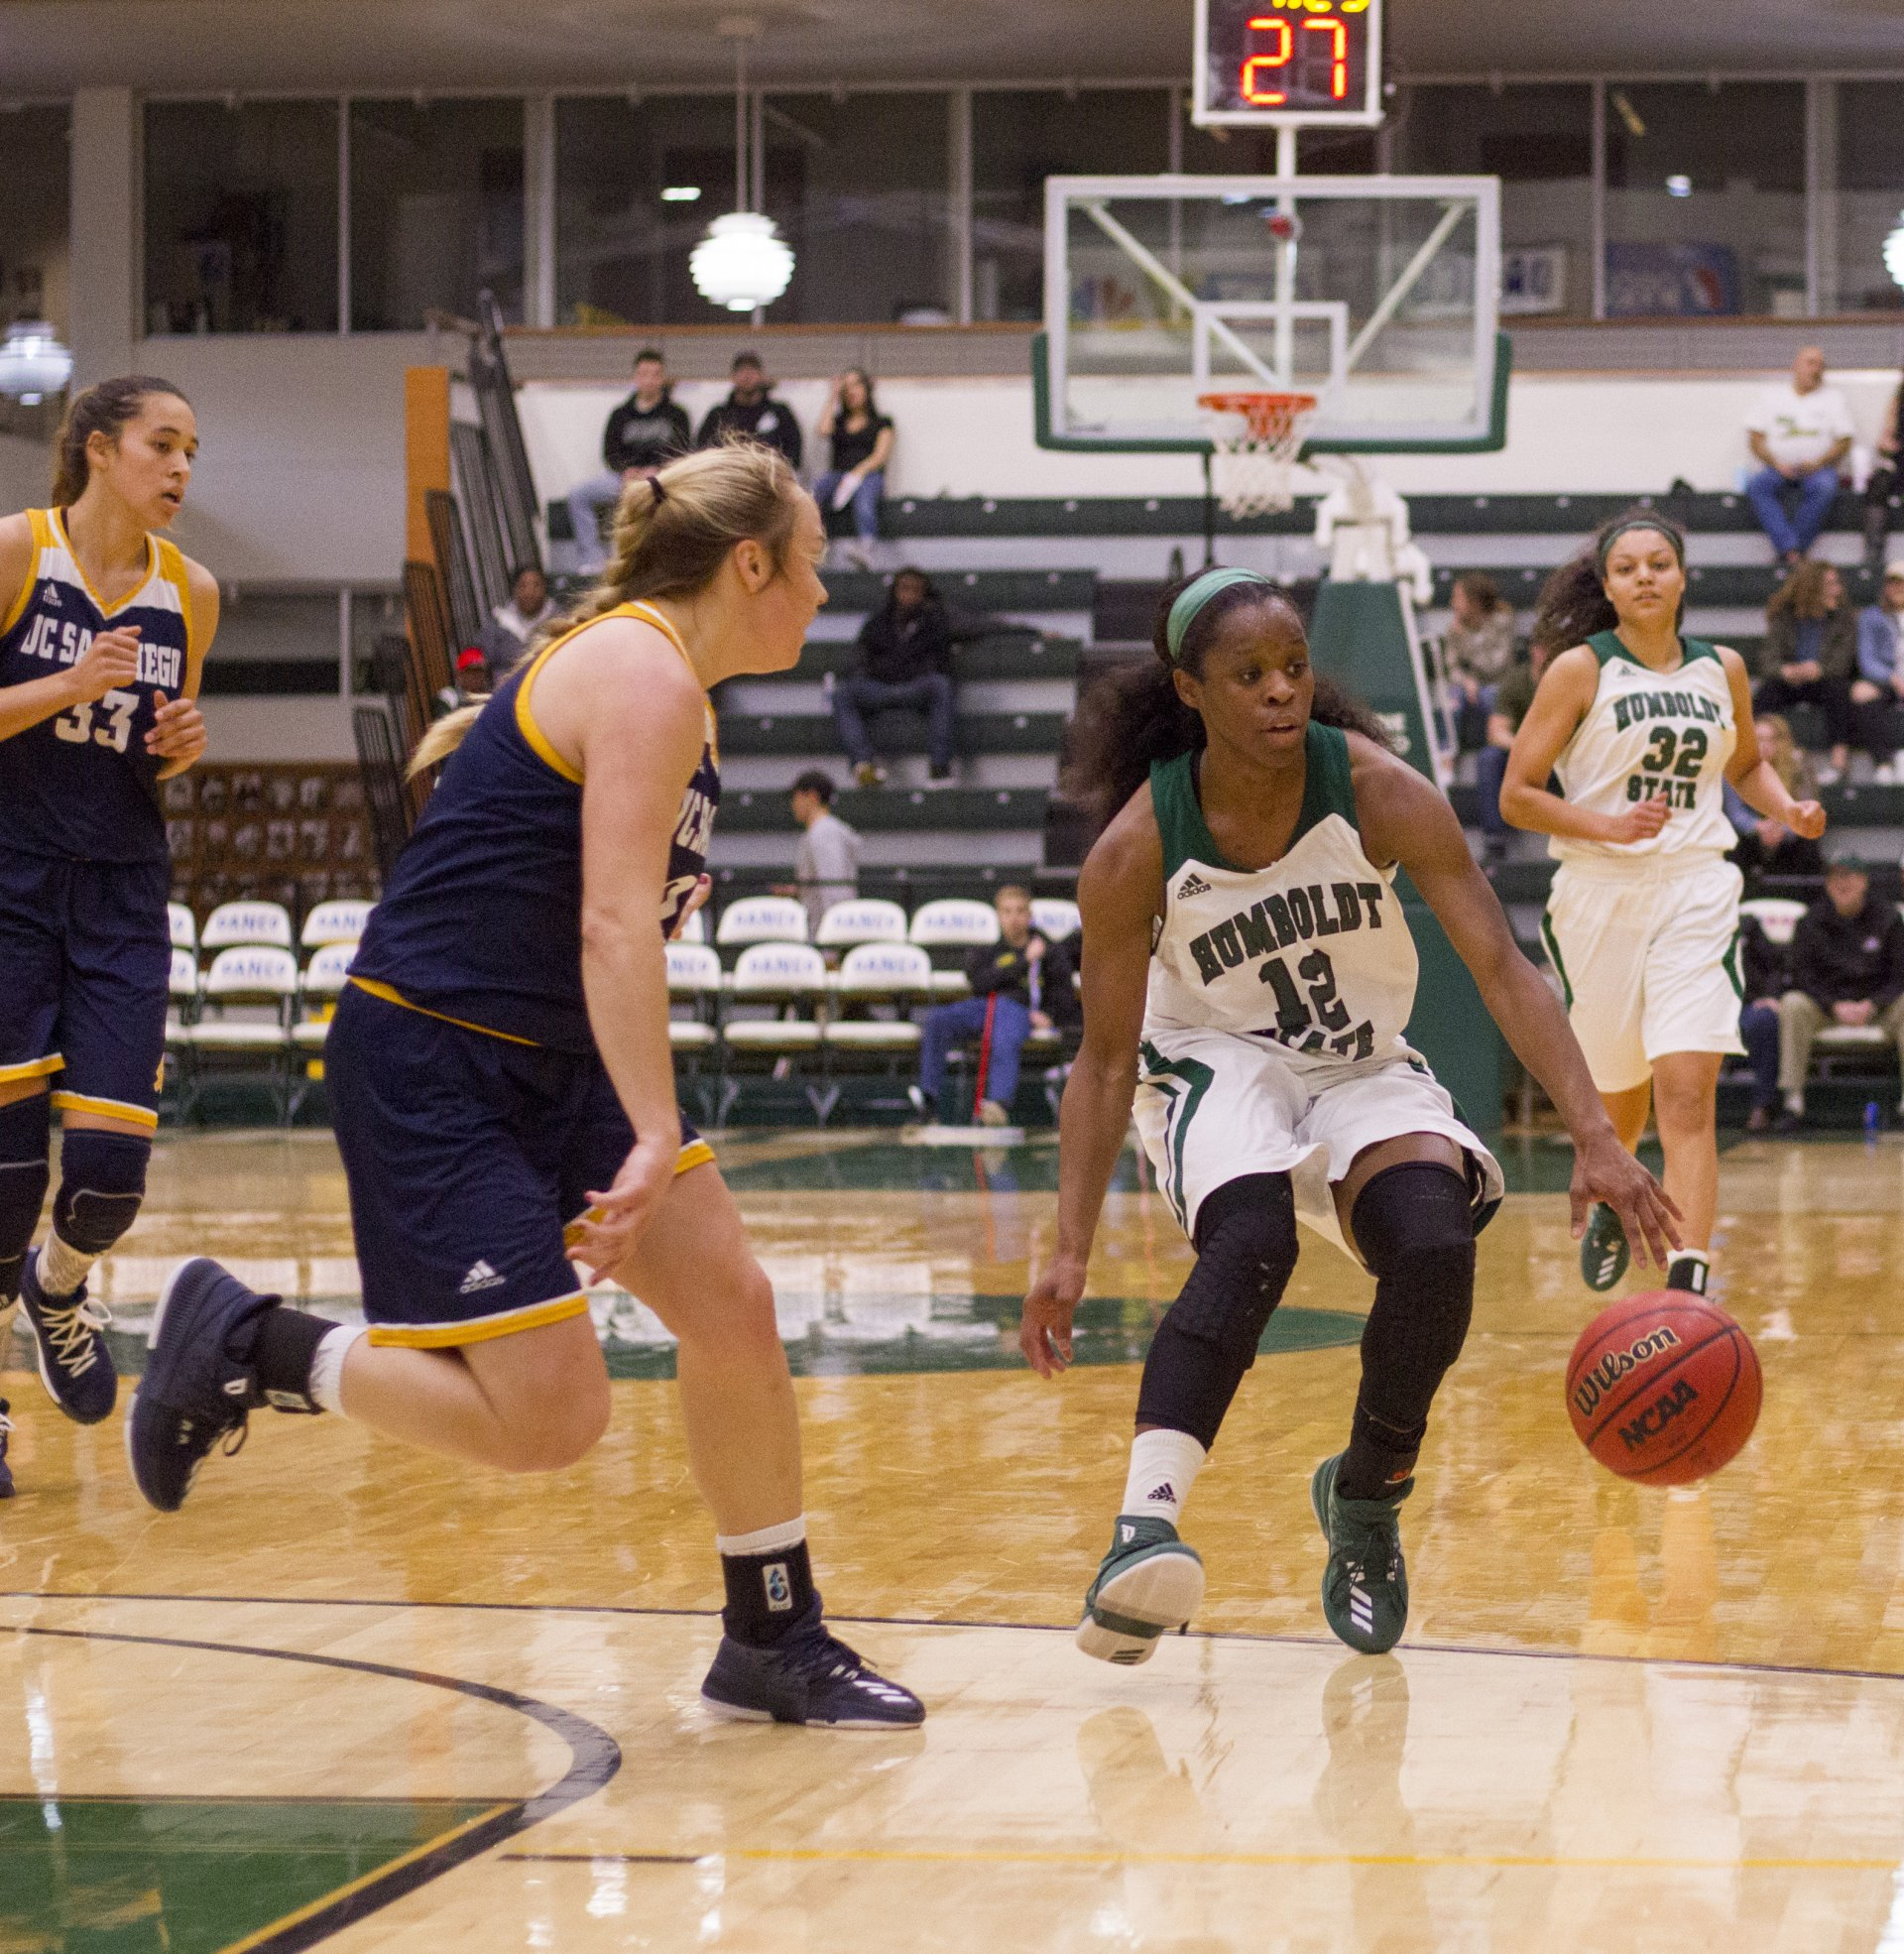 Tyla Turner hesitates on her way to the basket in a 77-62 loss against University of California, San Diego in the Lumberjack Arena on Feb. 17. Photo by Diego Linares.